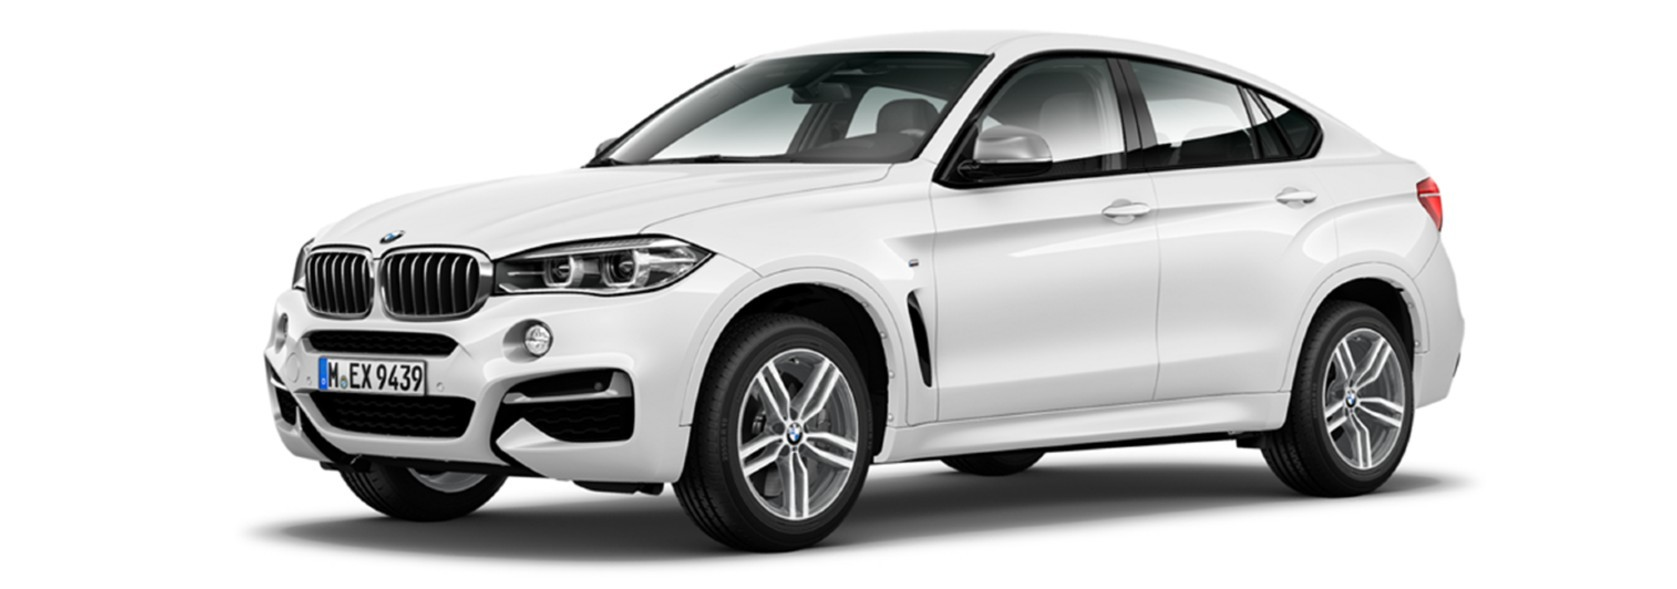 Brand new BMW X6 M50d finance deals